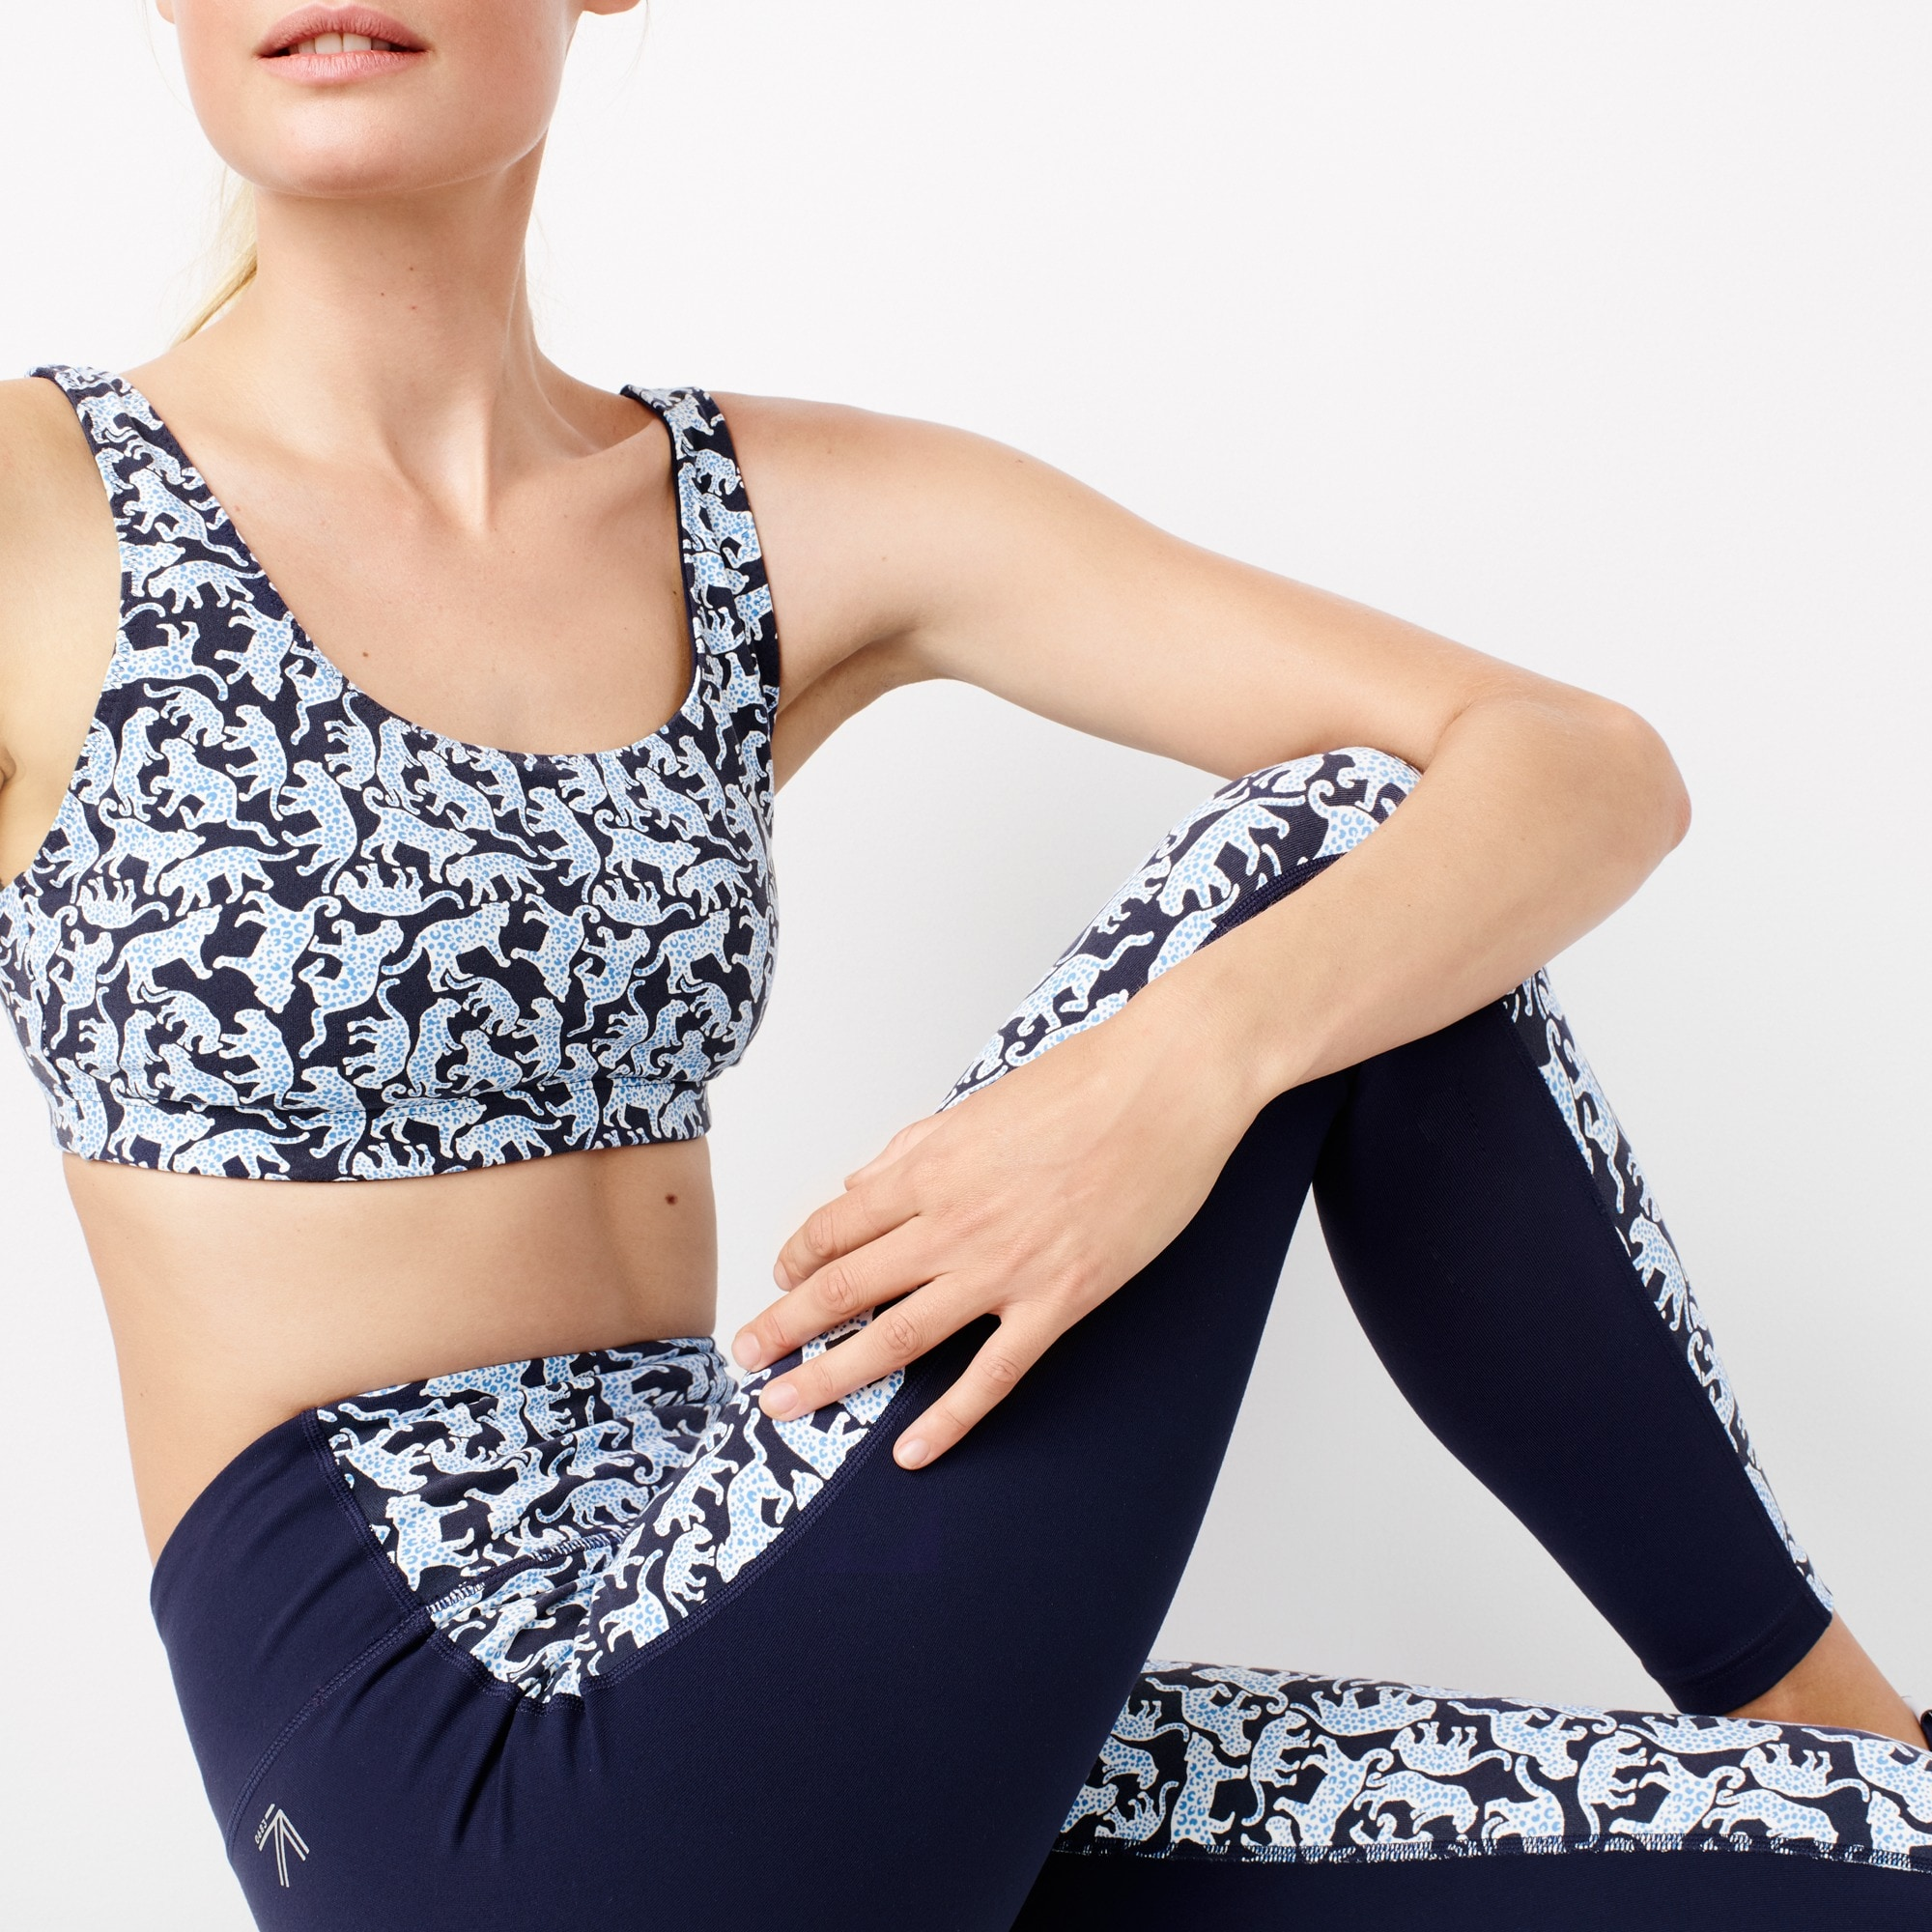 New Balance ® for J.Crew high waisted performance leggings in Drake's jaguar print